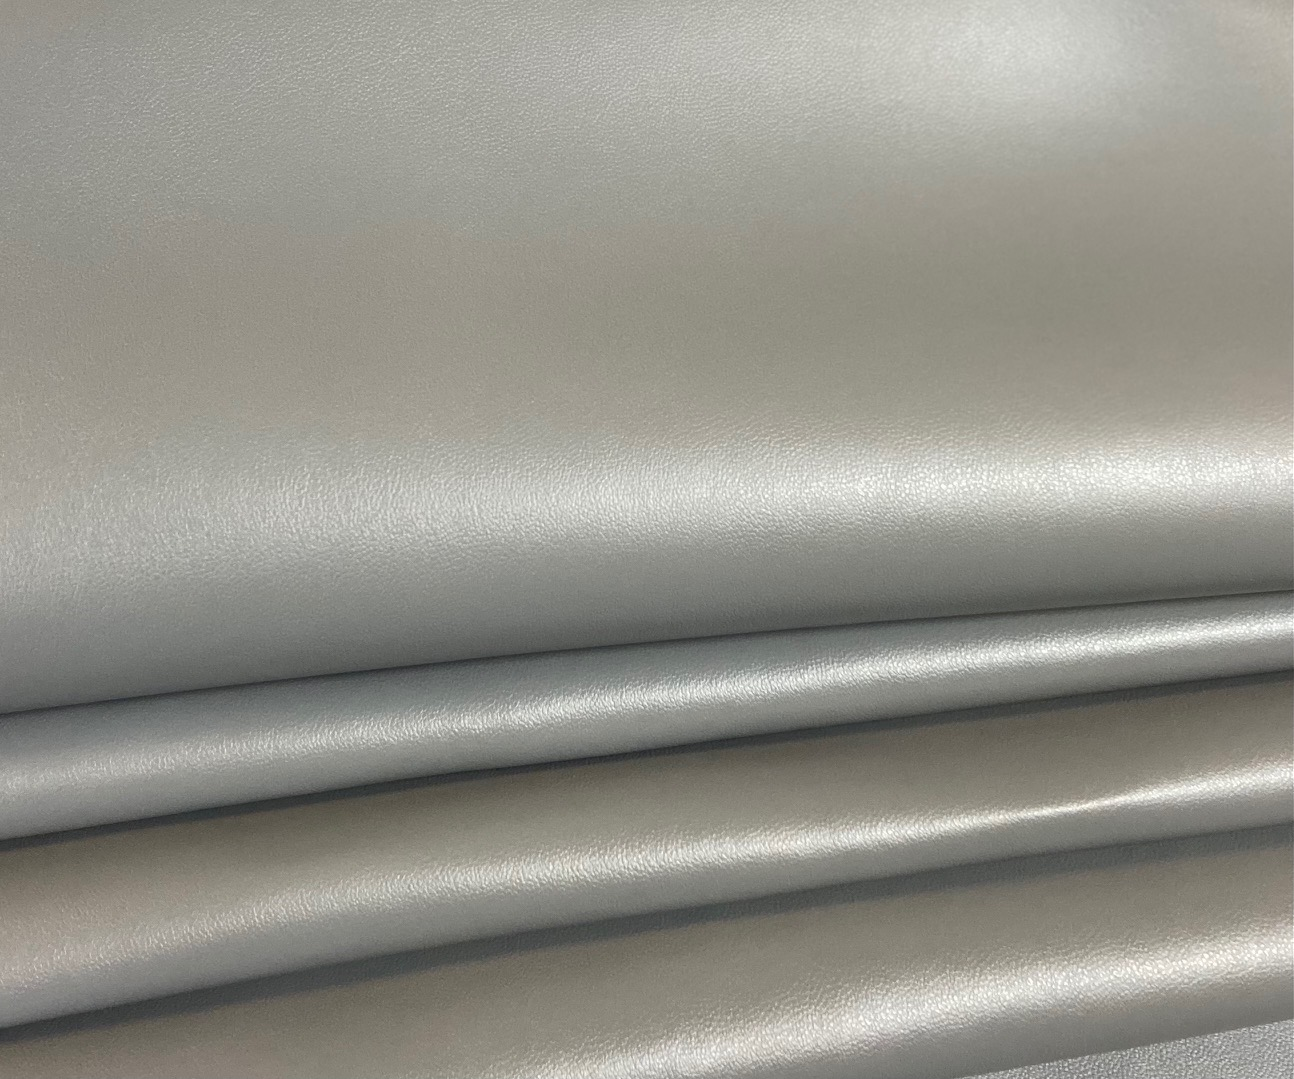 PVC Leather MAR- UV, salt water resistant, GREY colour, width 145cm, weight 600g/m². Price per meter VAT incl. Free shipping!